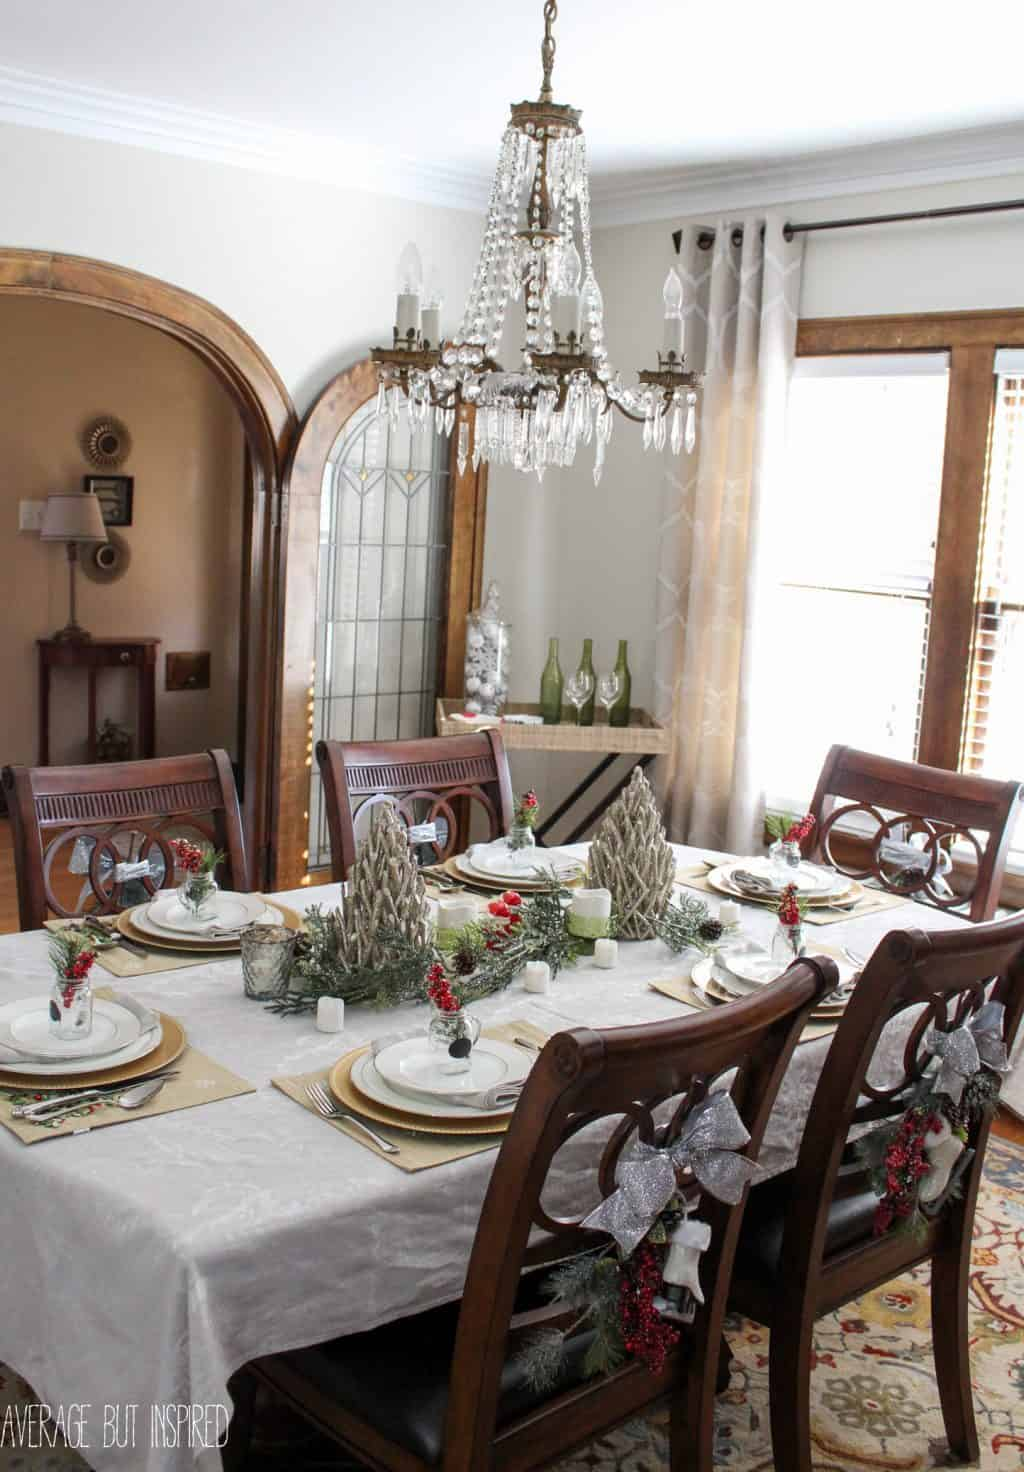 This Post Has Great Ideas For Decorating Your Dining Room Christmas 5 Manageable Tips